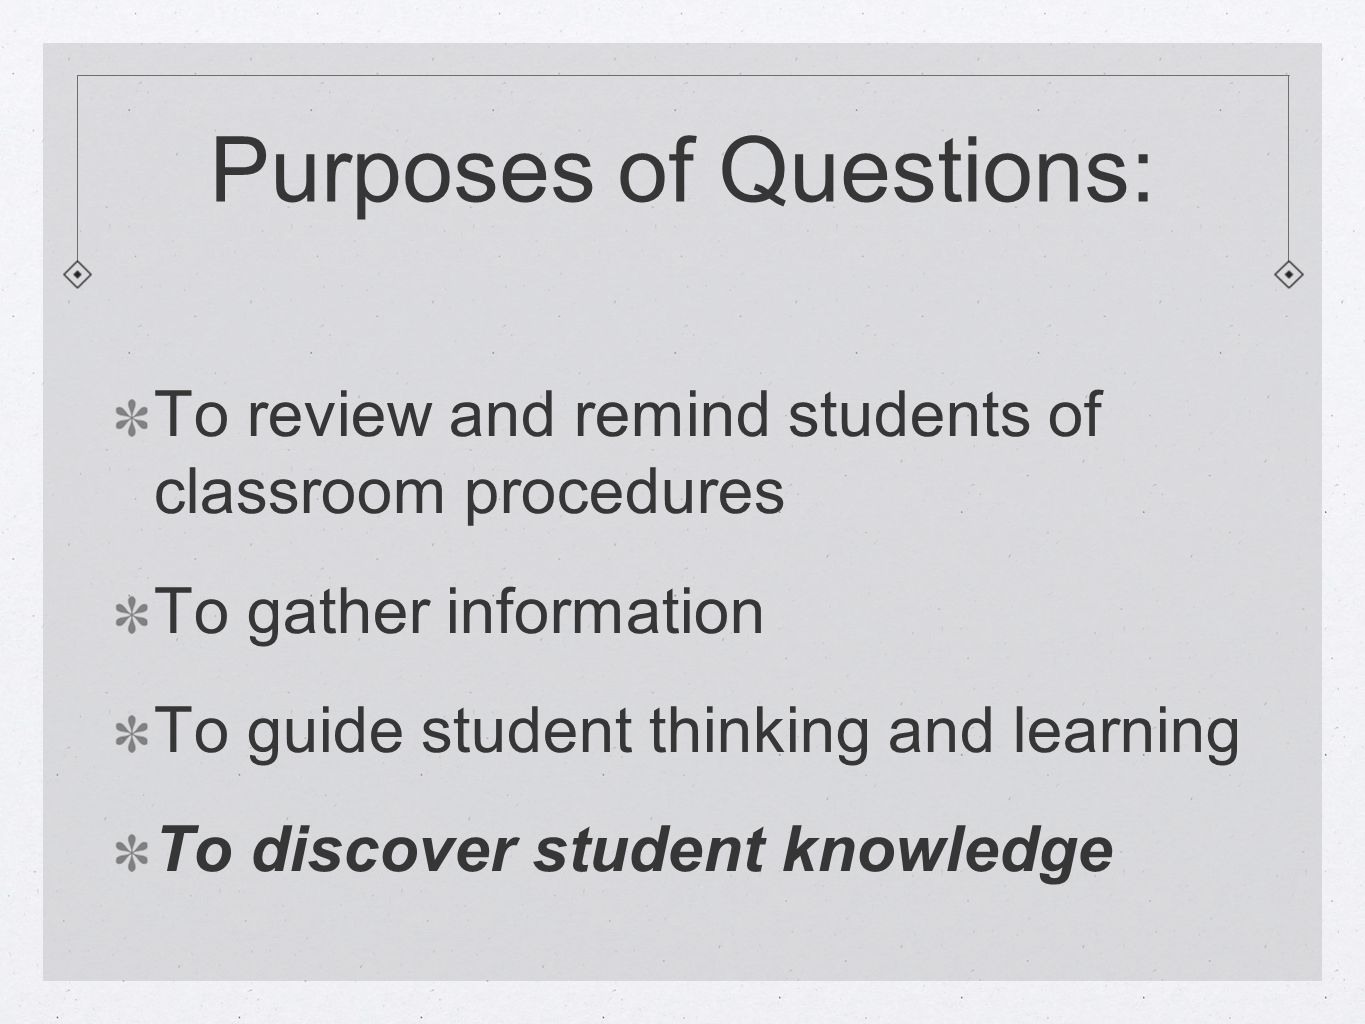 Purposes of Questions: To review and remind students of classroom procedures To gather information To guide student thinking and learning To discover